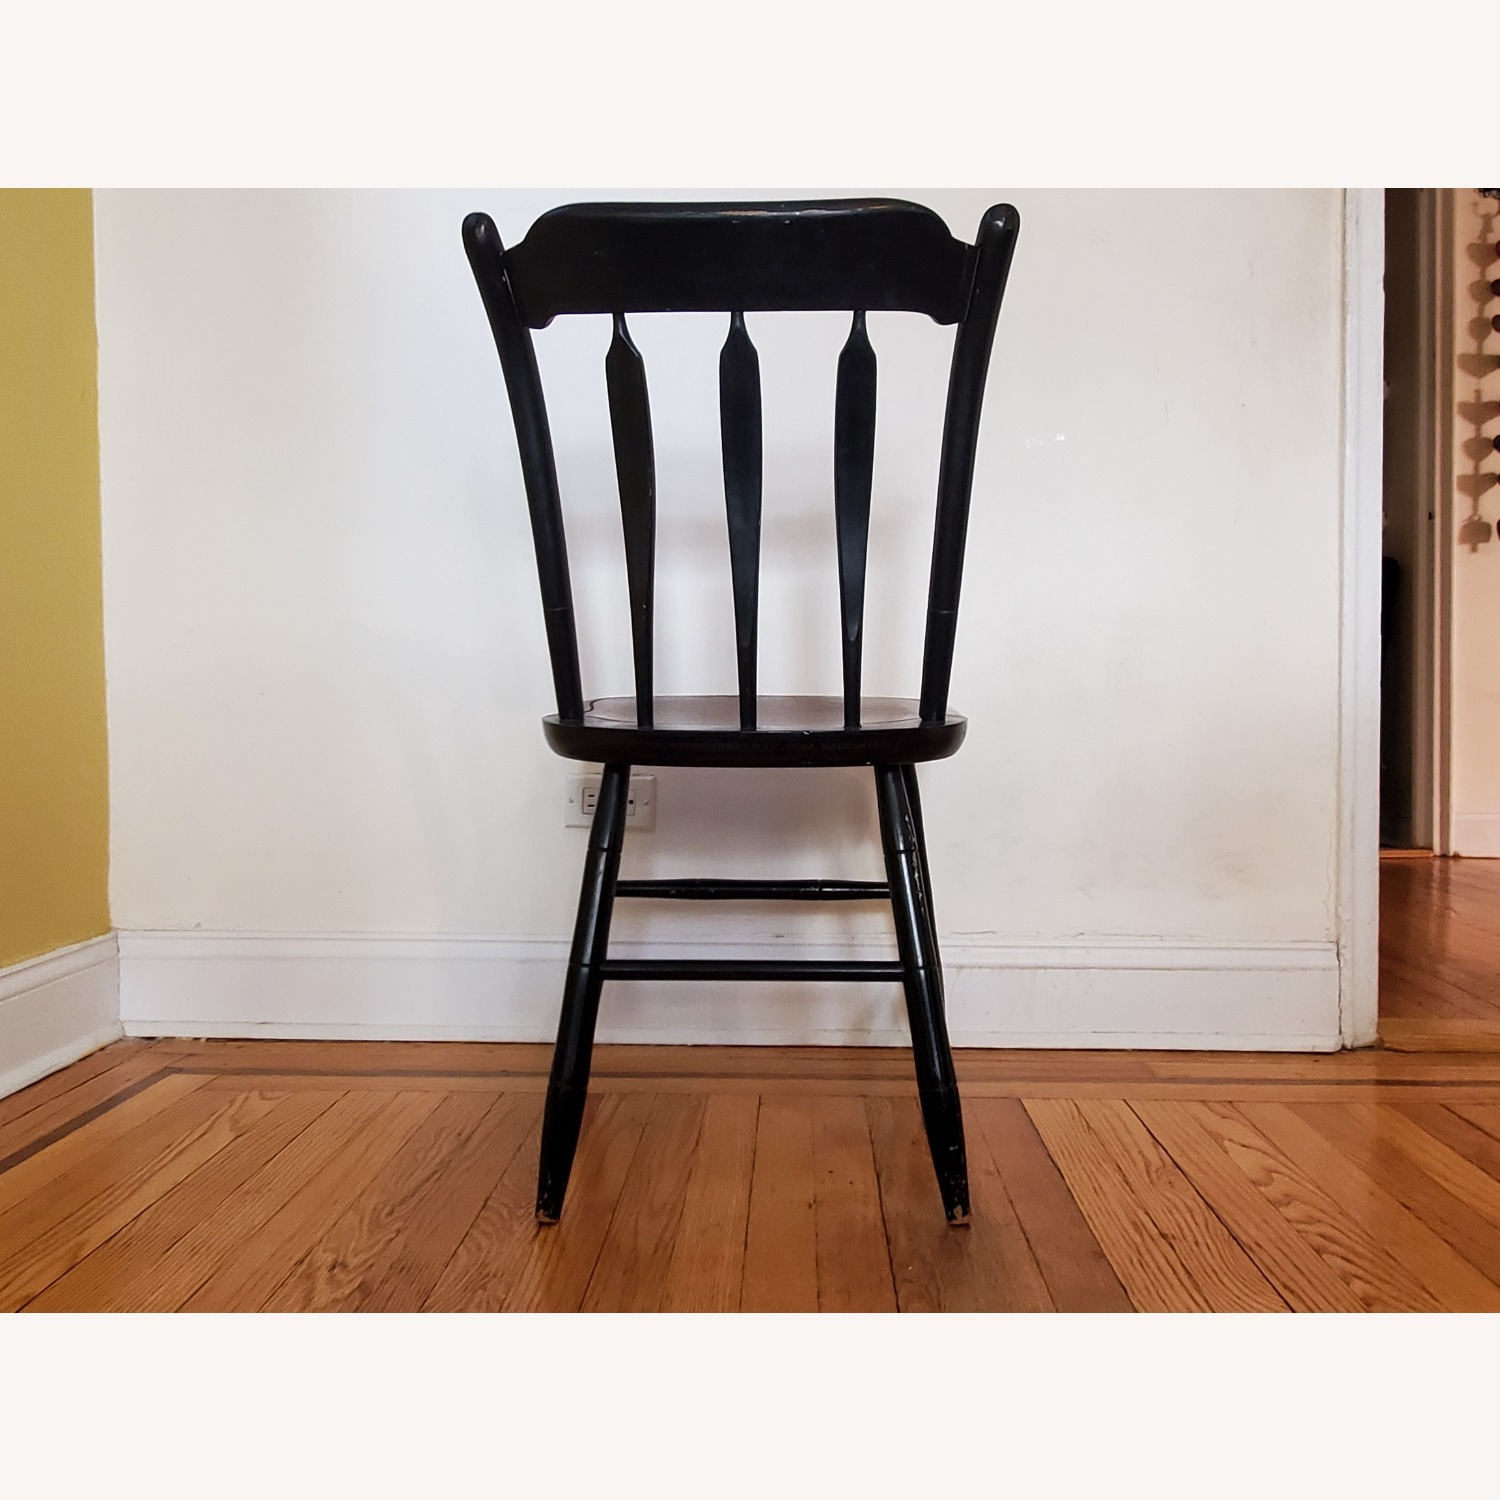 Hitchcock Furniture Signed Black Farmhouse Chair - image-8